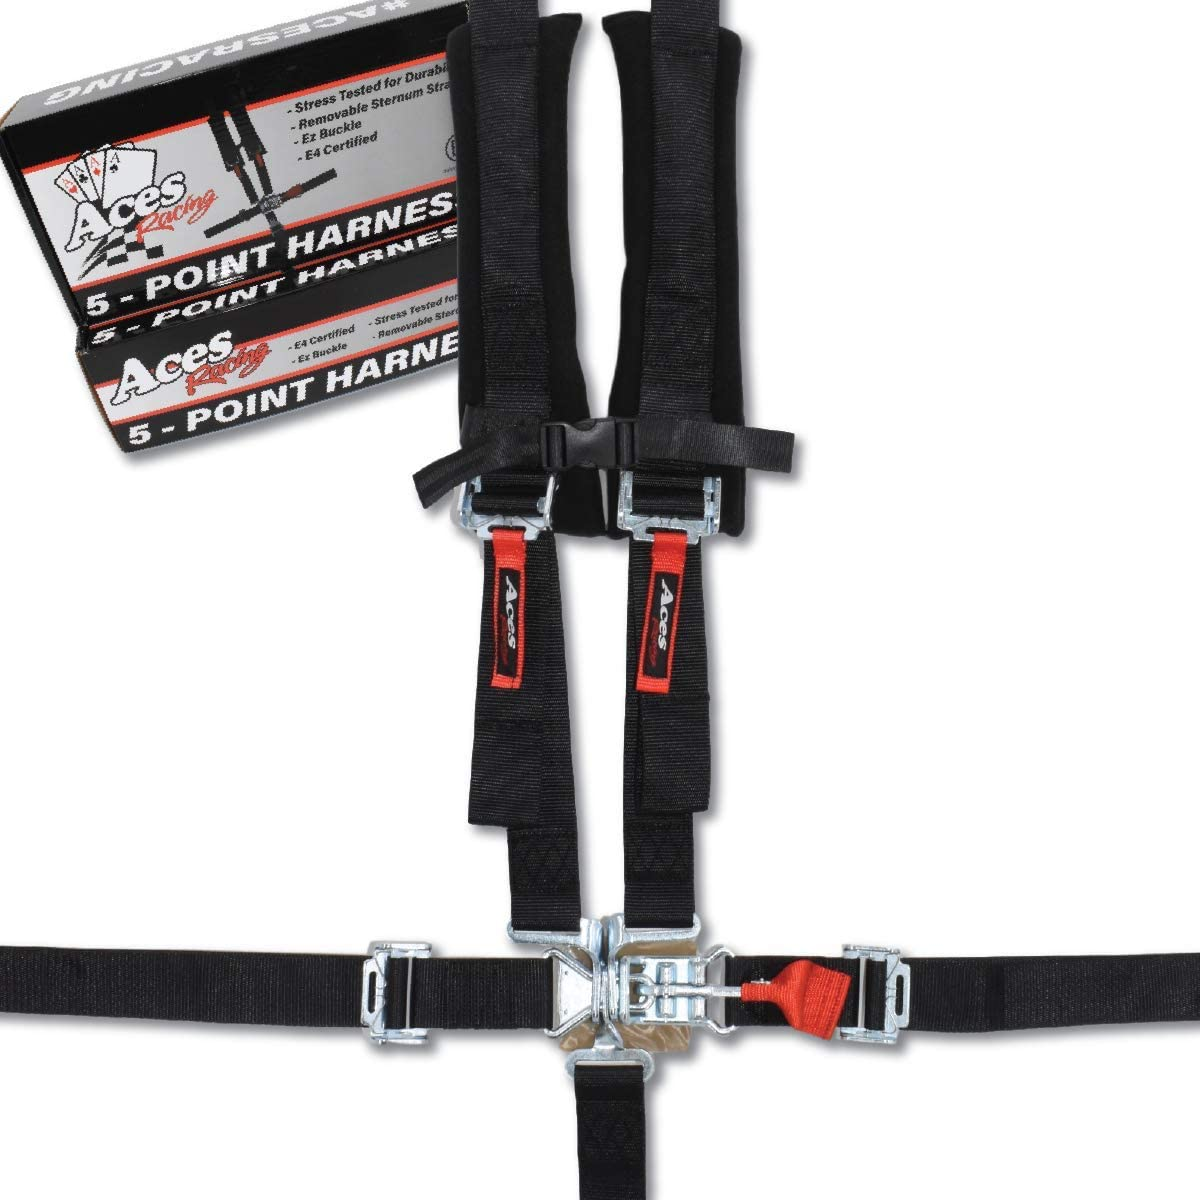 Black Aces Racing 5 Point Harness with 2 Inch Padding E4 Certified